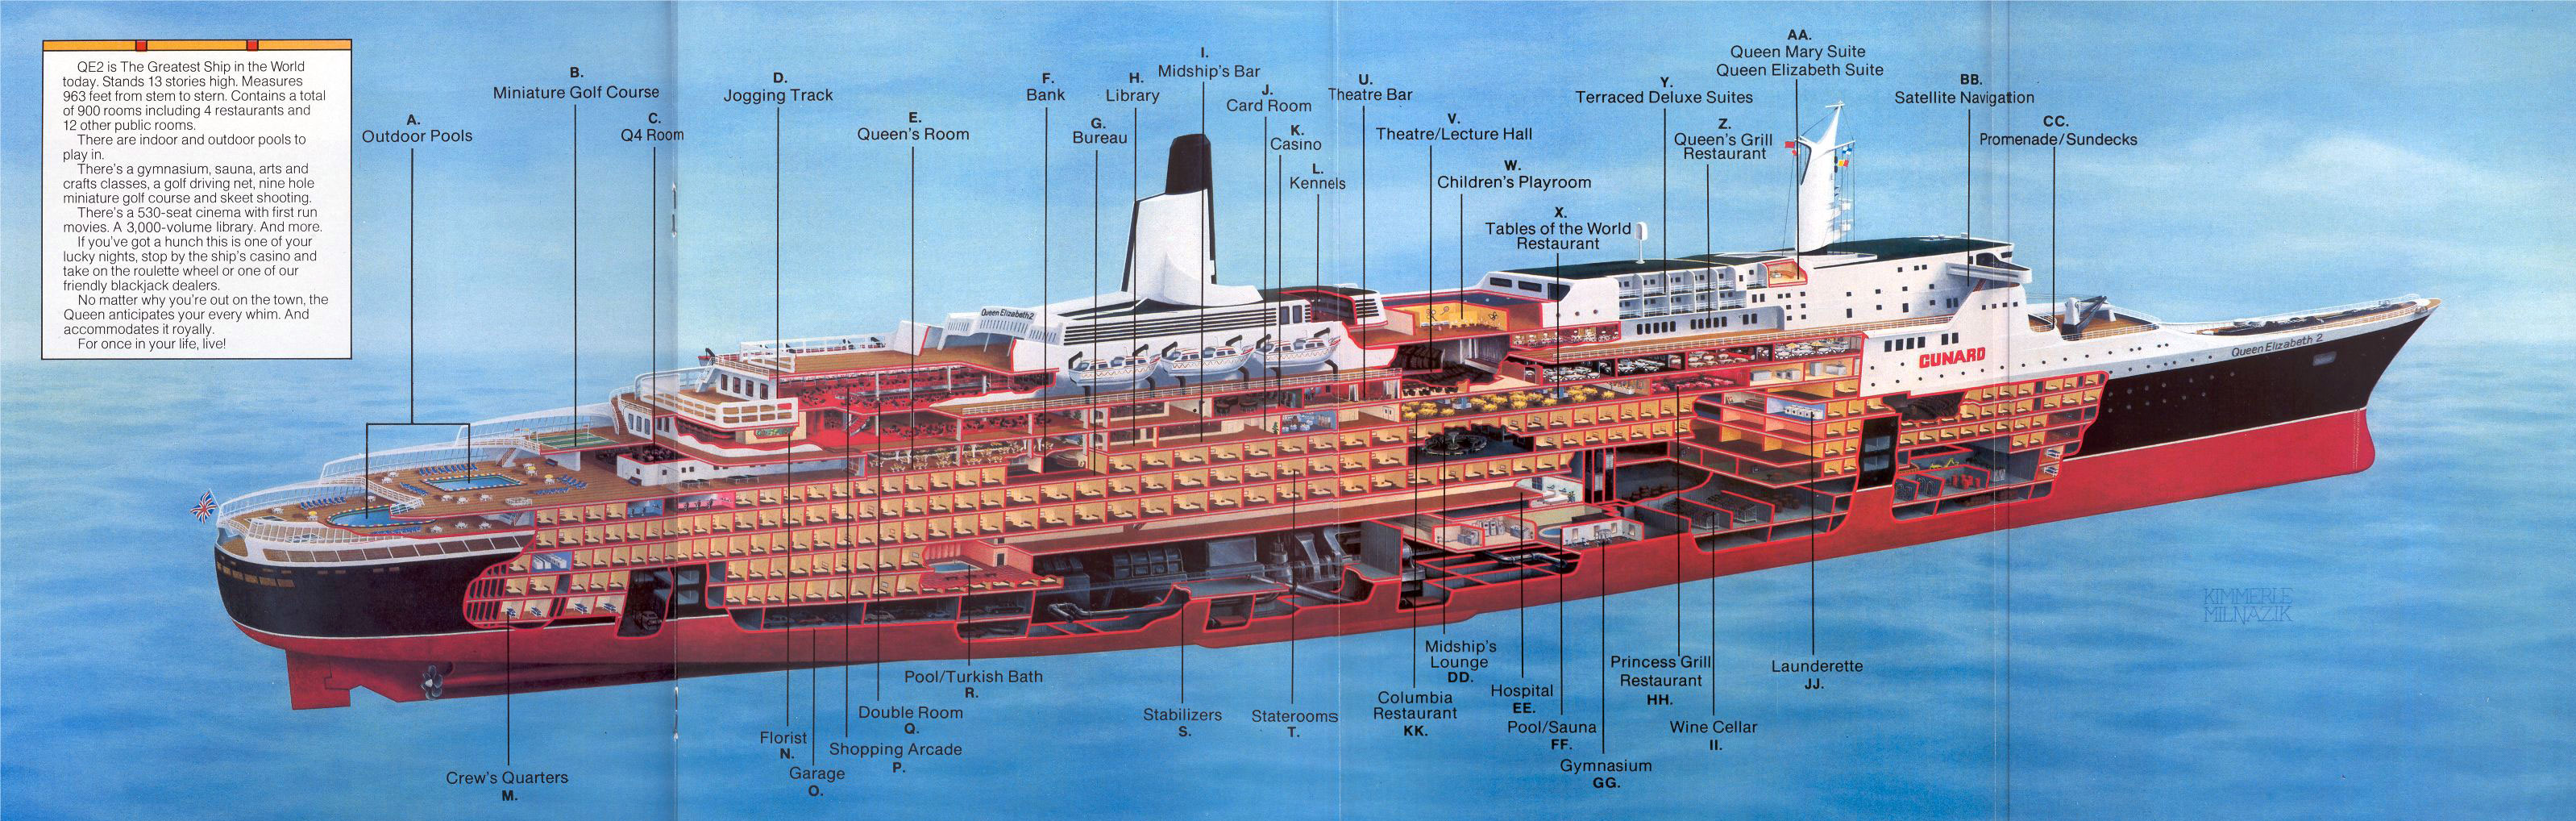 this is the QE2 of 1982.